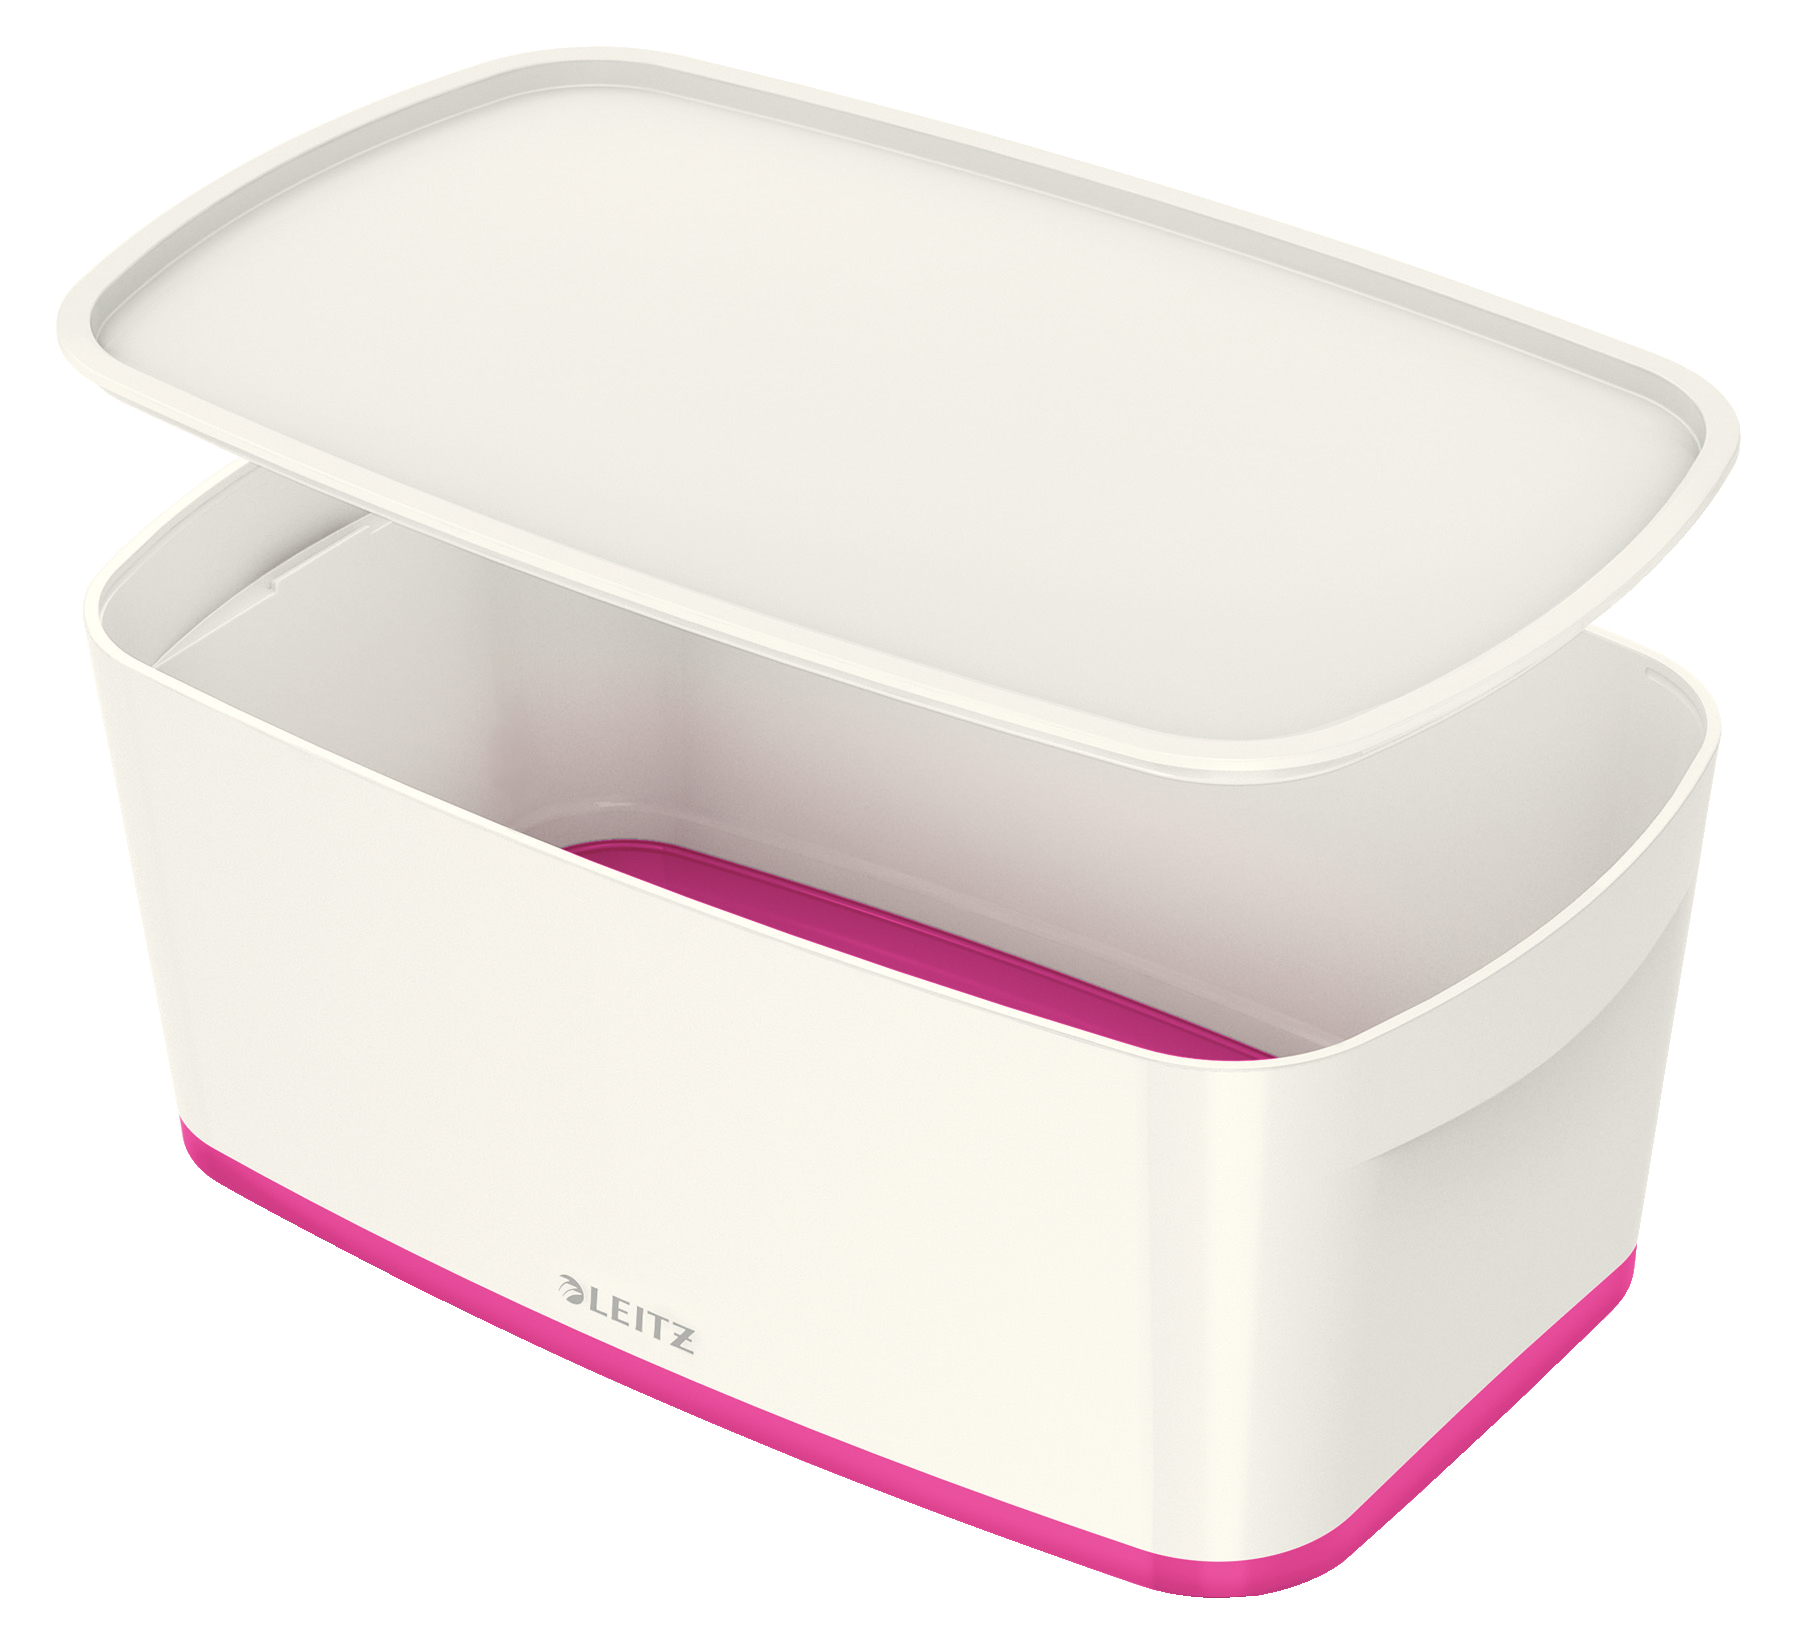 Tool Boxes Leitz MyBox Small with Lid WOW White Pink